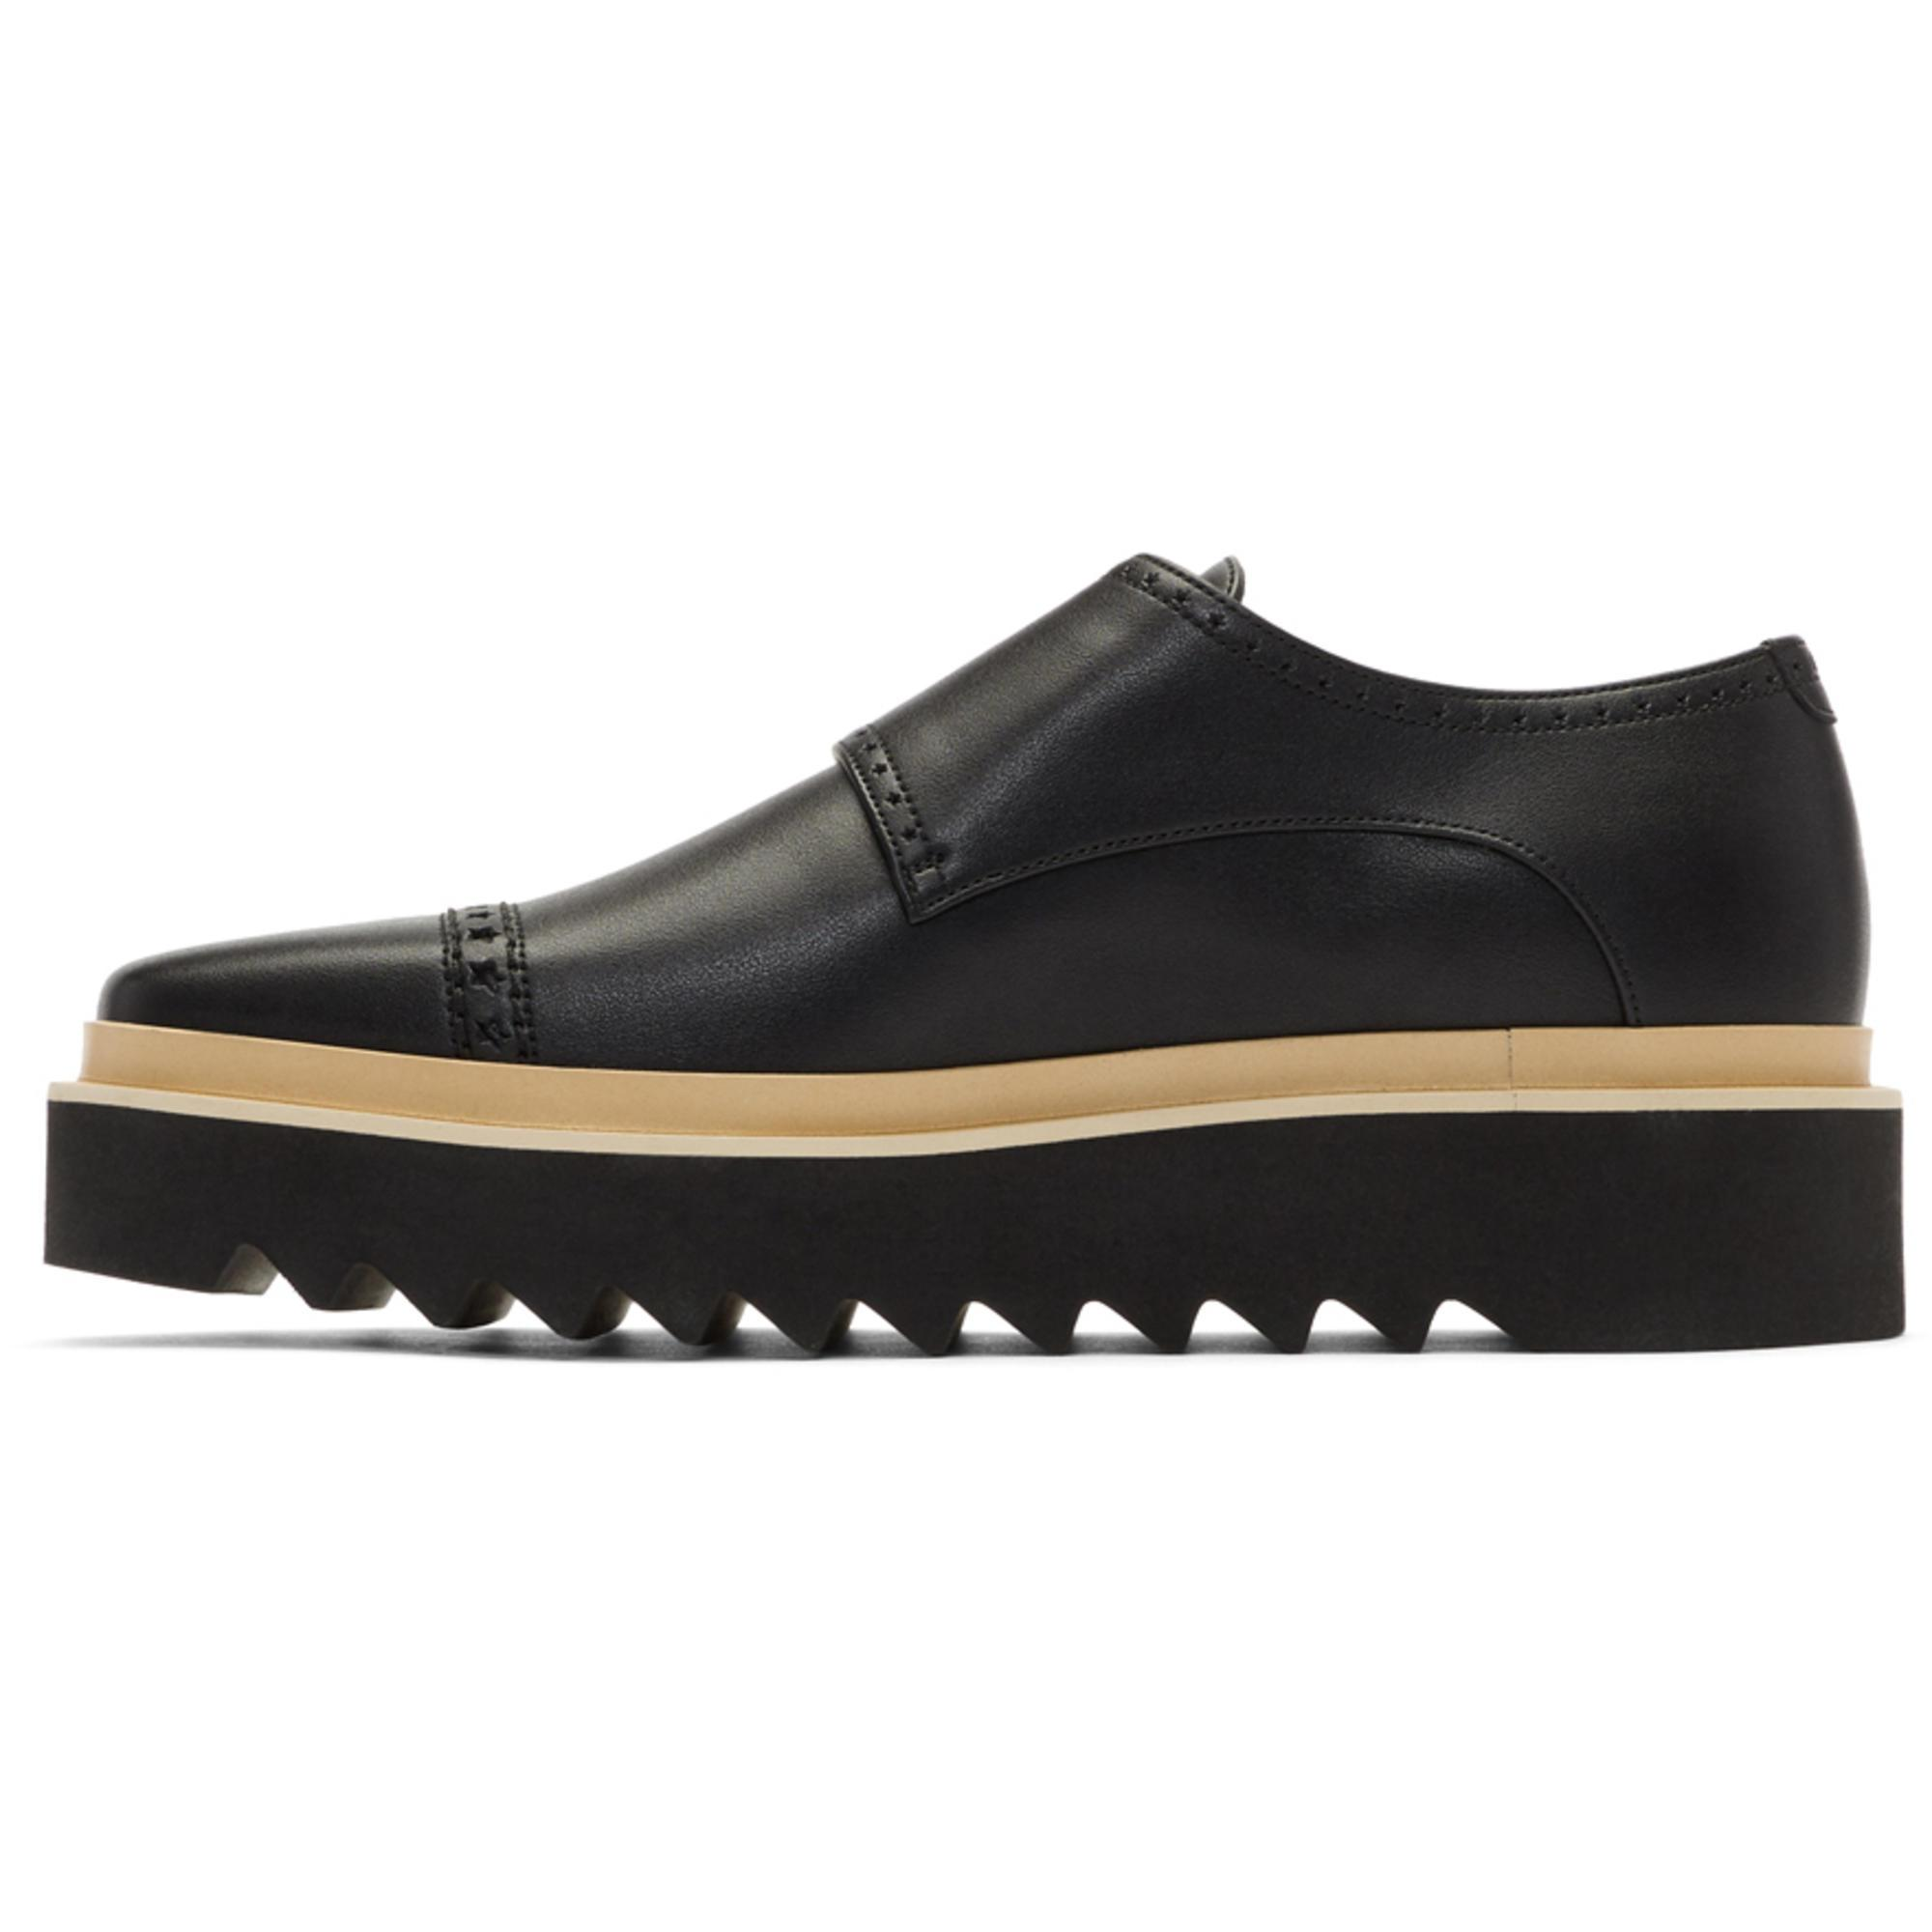 Get To Buy Online Black Lewis Little Stars Monkstraps Stella McCartney Outlet Shop dUkypFcuS